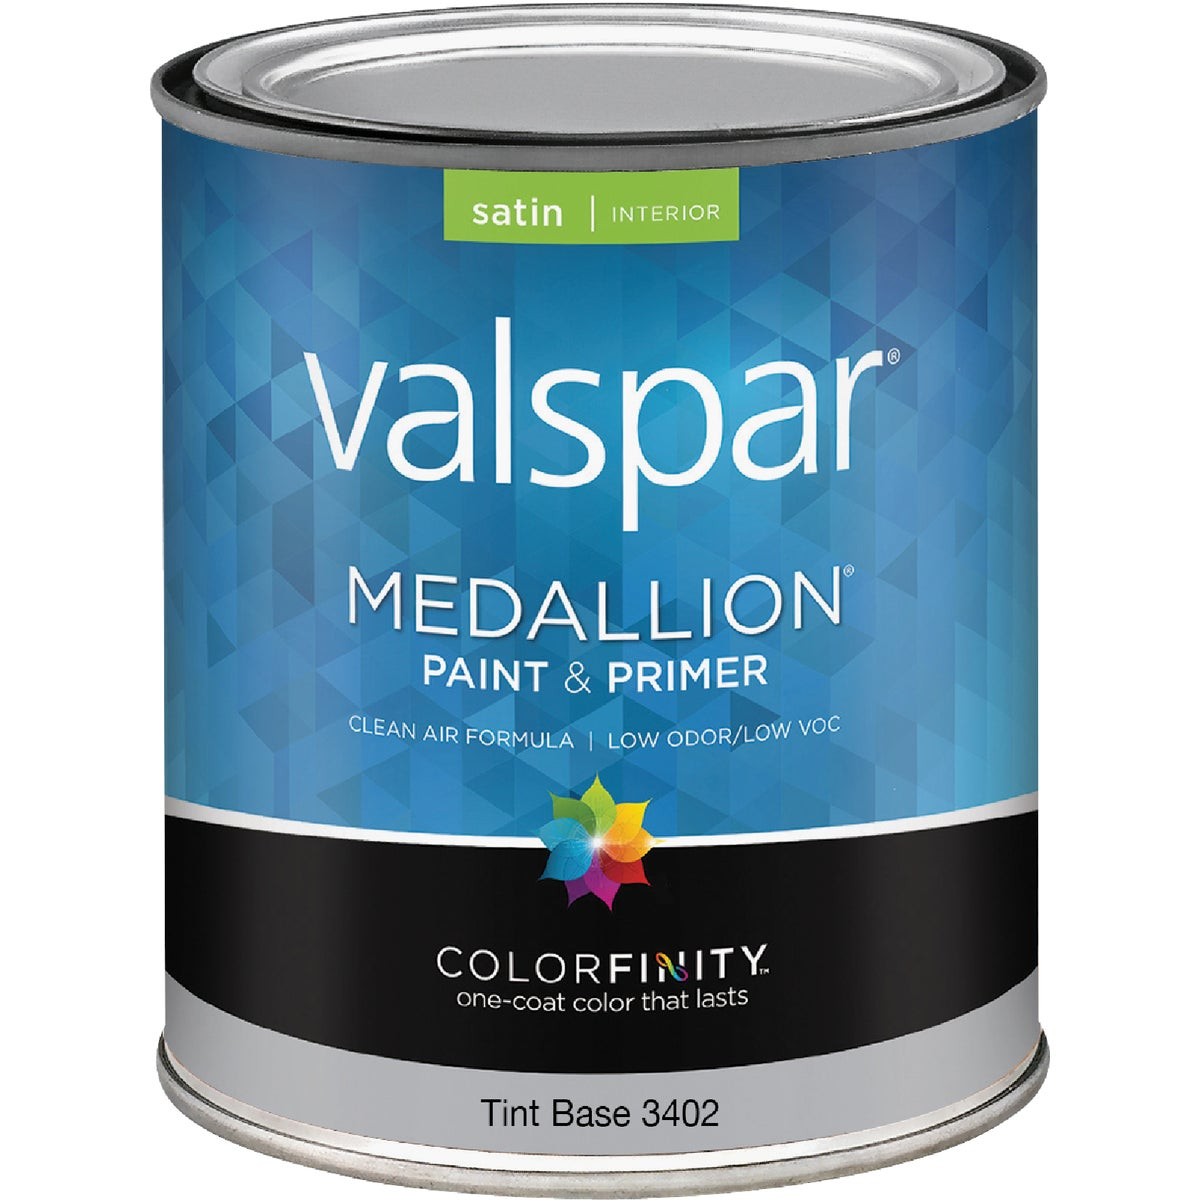 INT SAT TINT BS PAINT - 027.0003402.005 by Valspar Corp